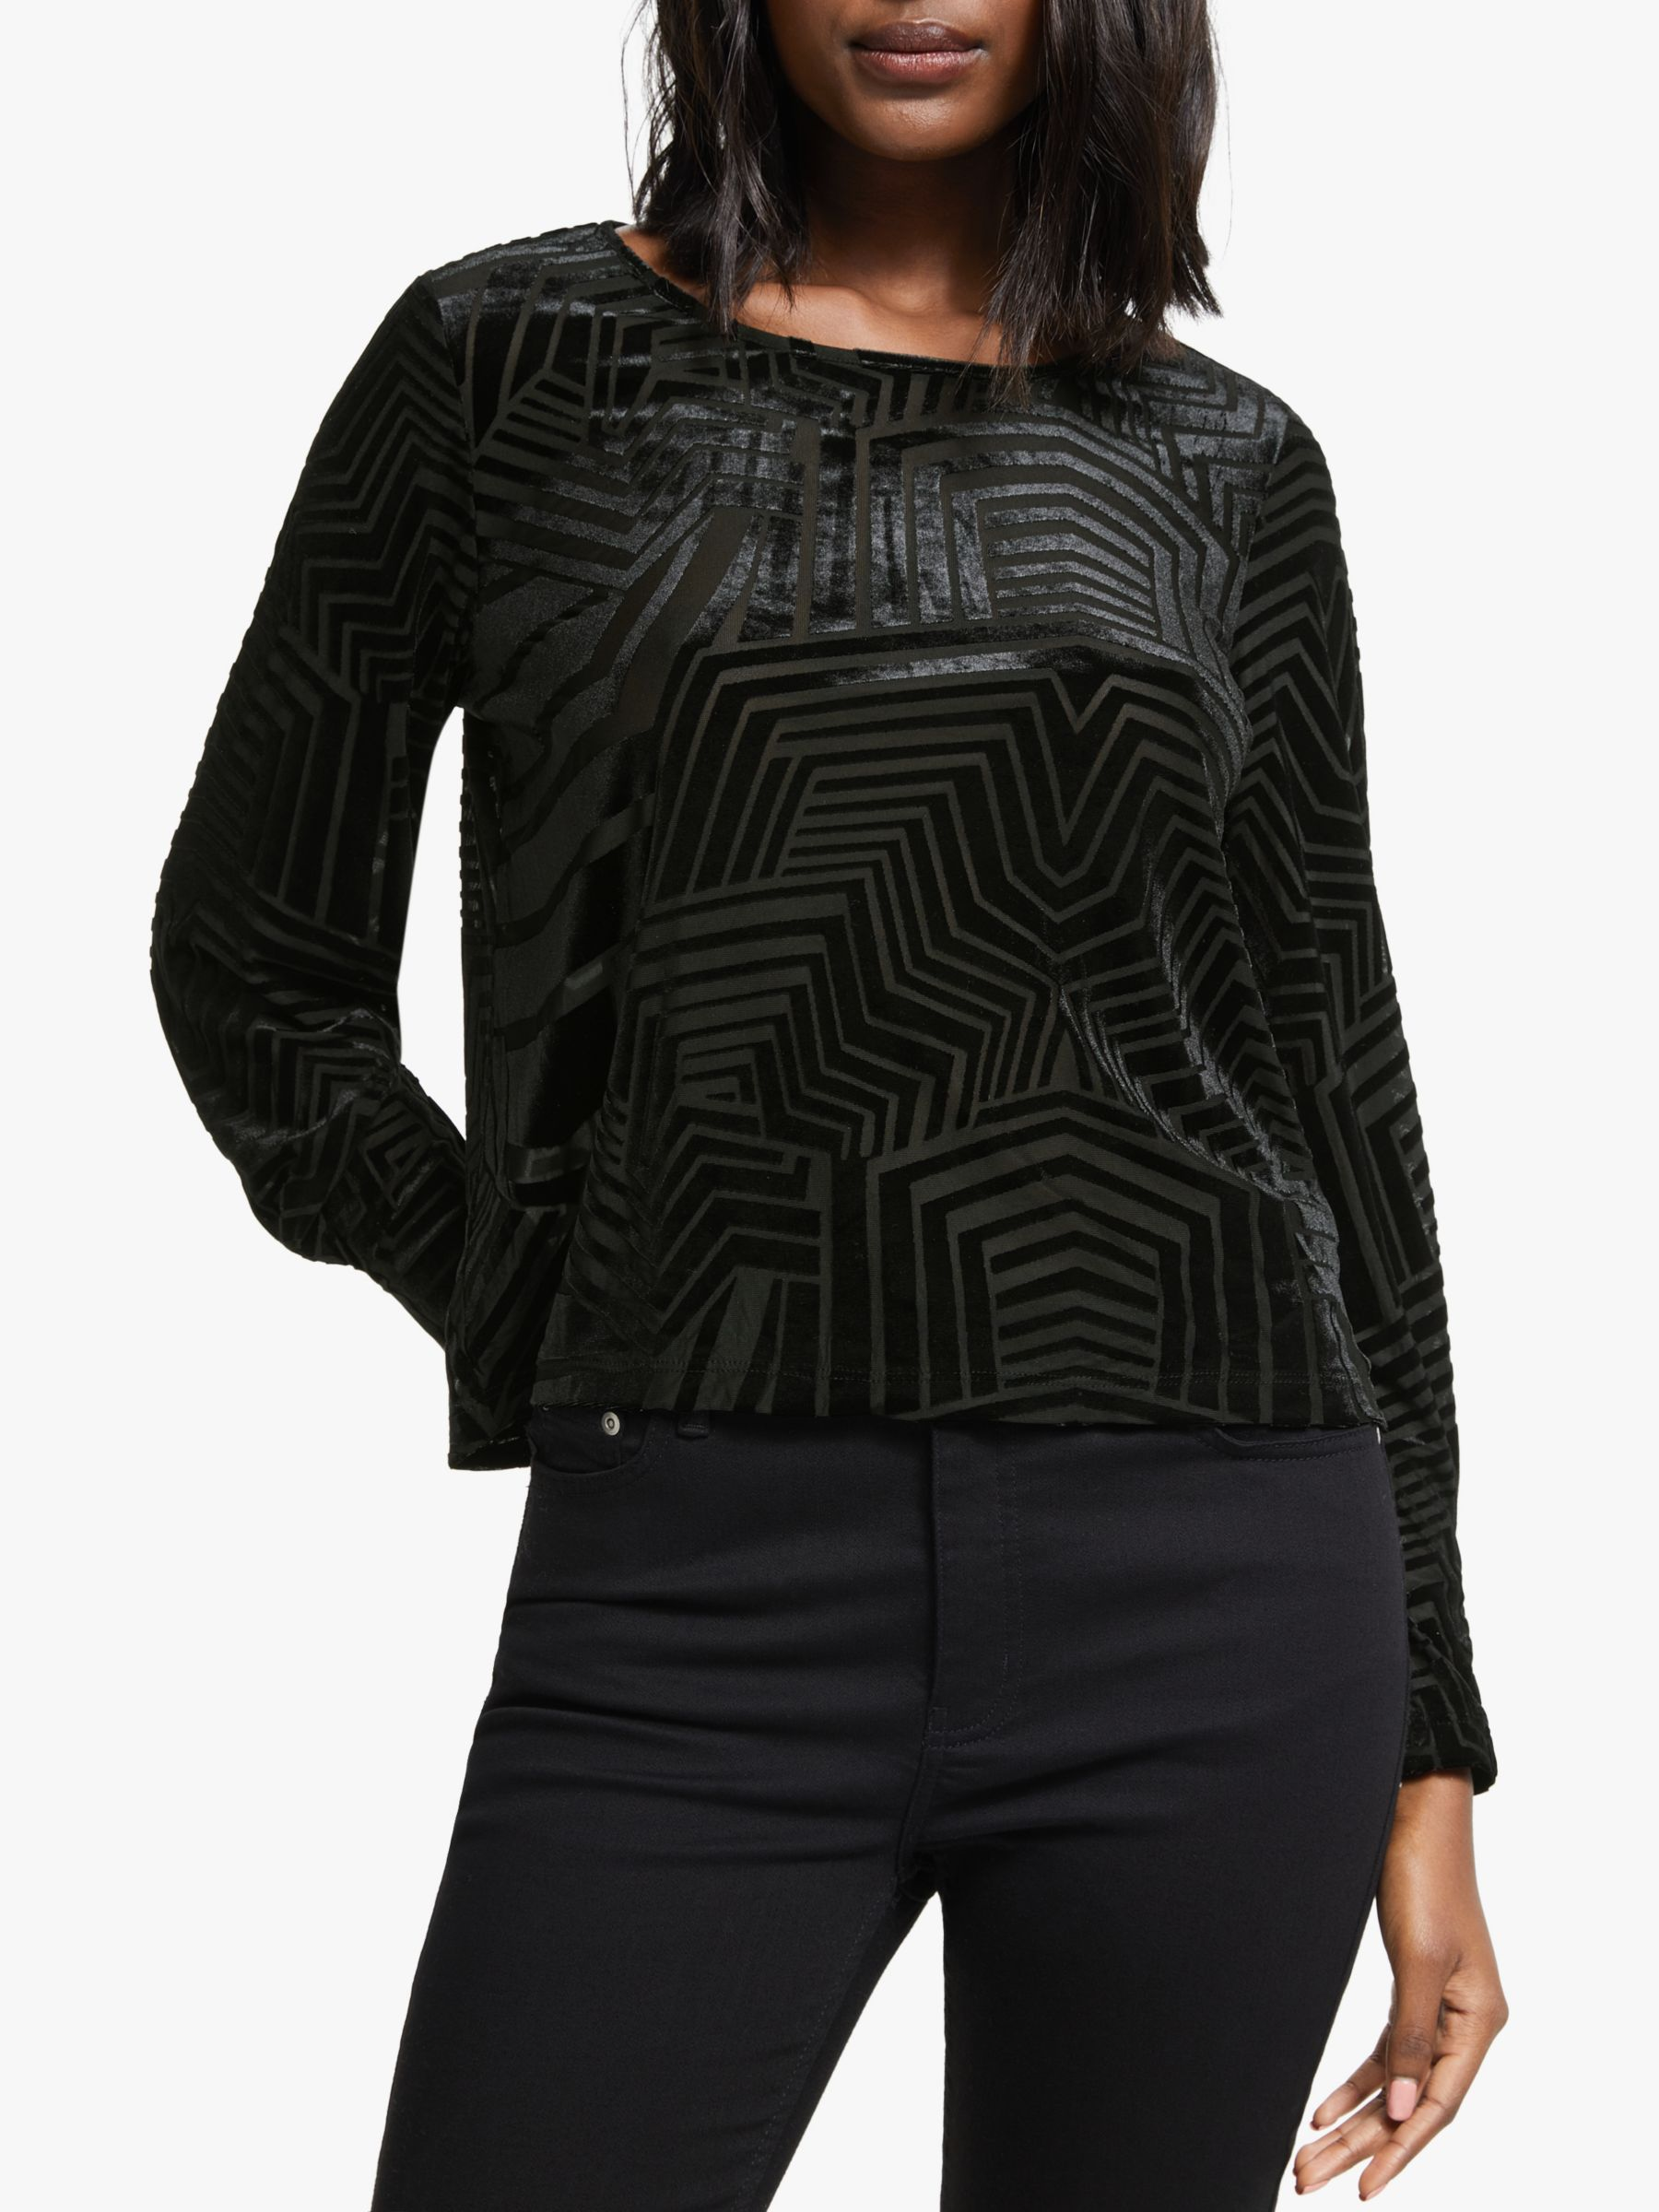 Numph Numph Adidaja Long Sleeve Velour Top, Caviar